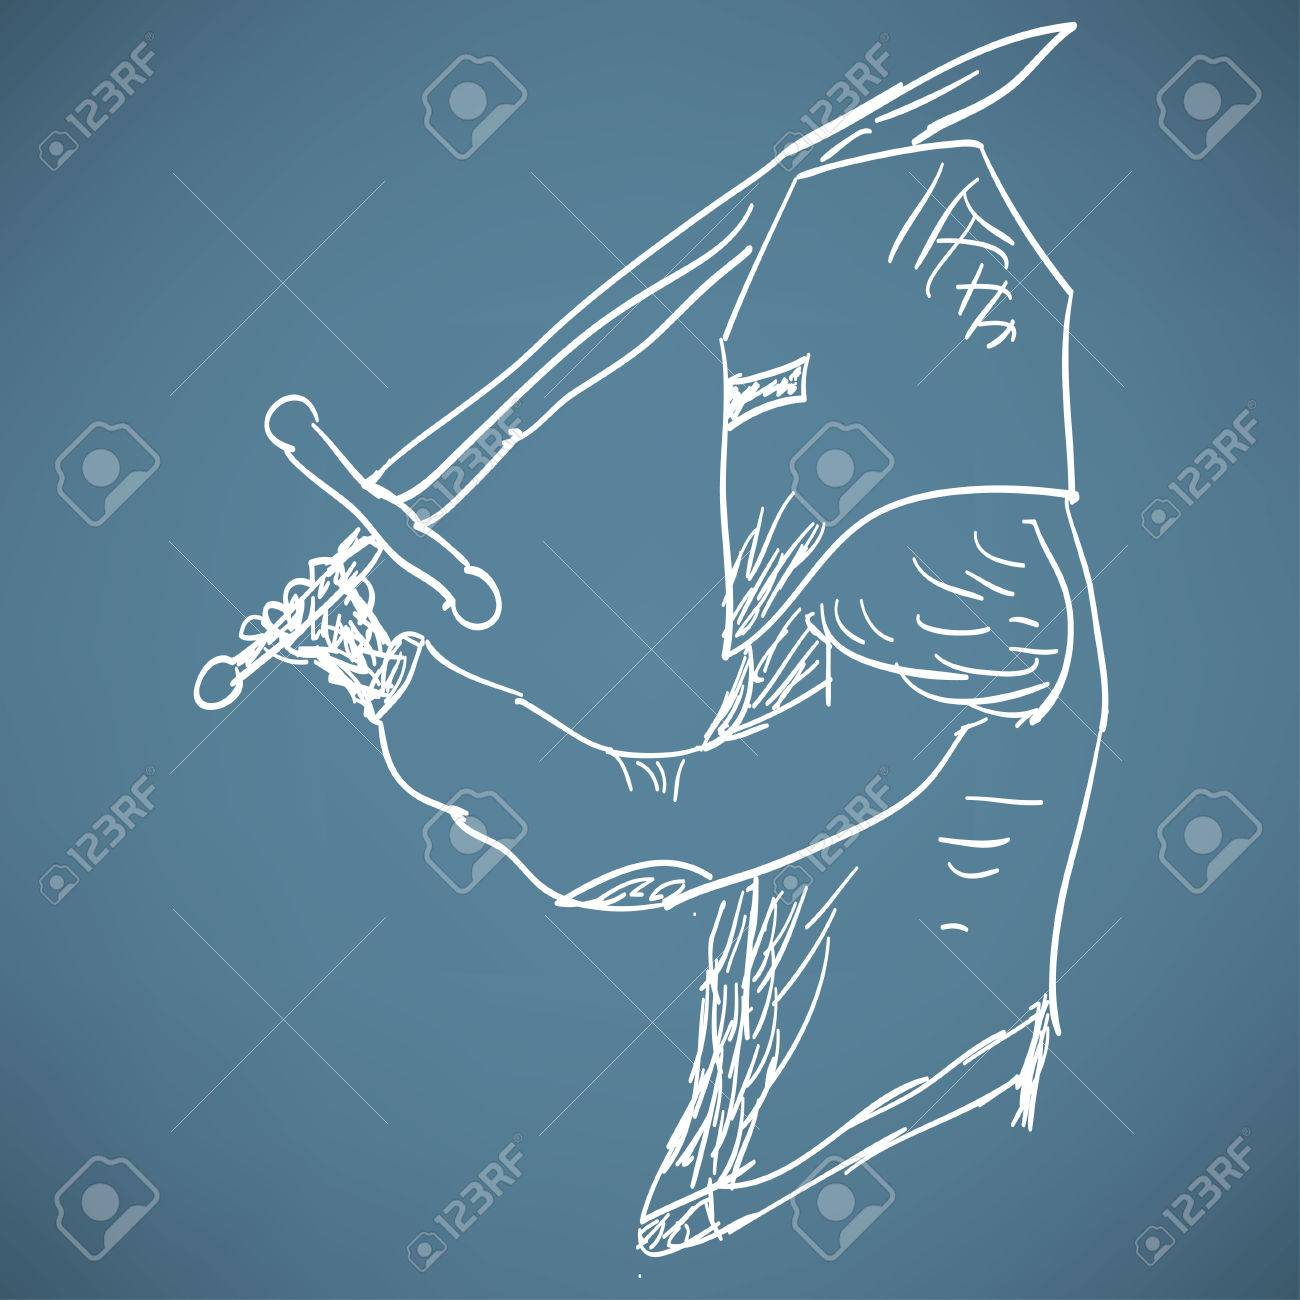 Sketch Of A Medieval Knight Royalty Free Cliparts, Vectors, And ...